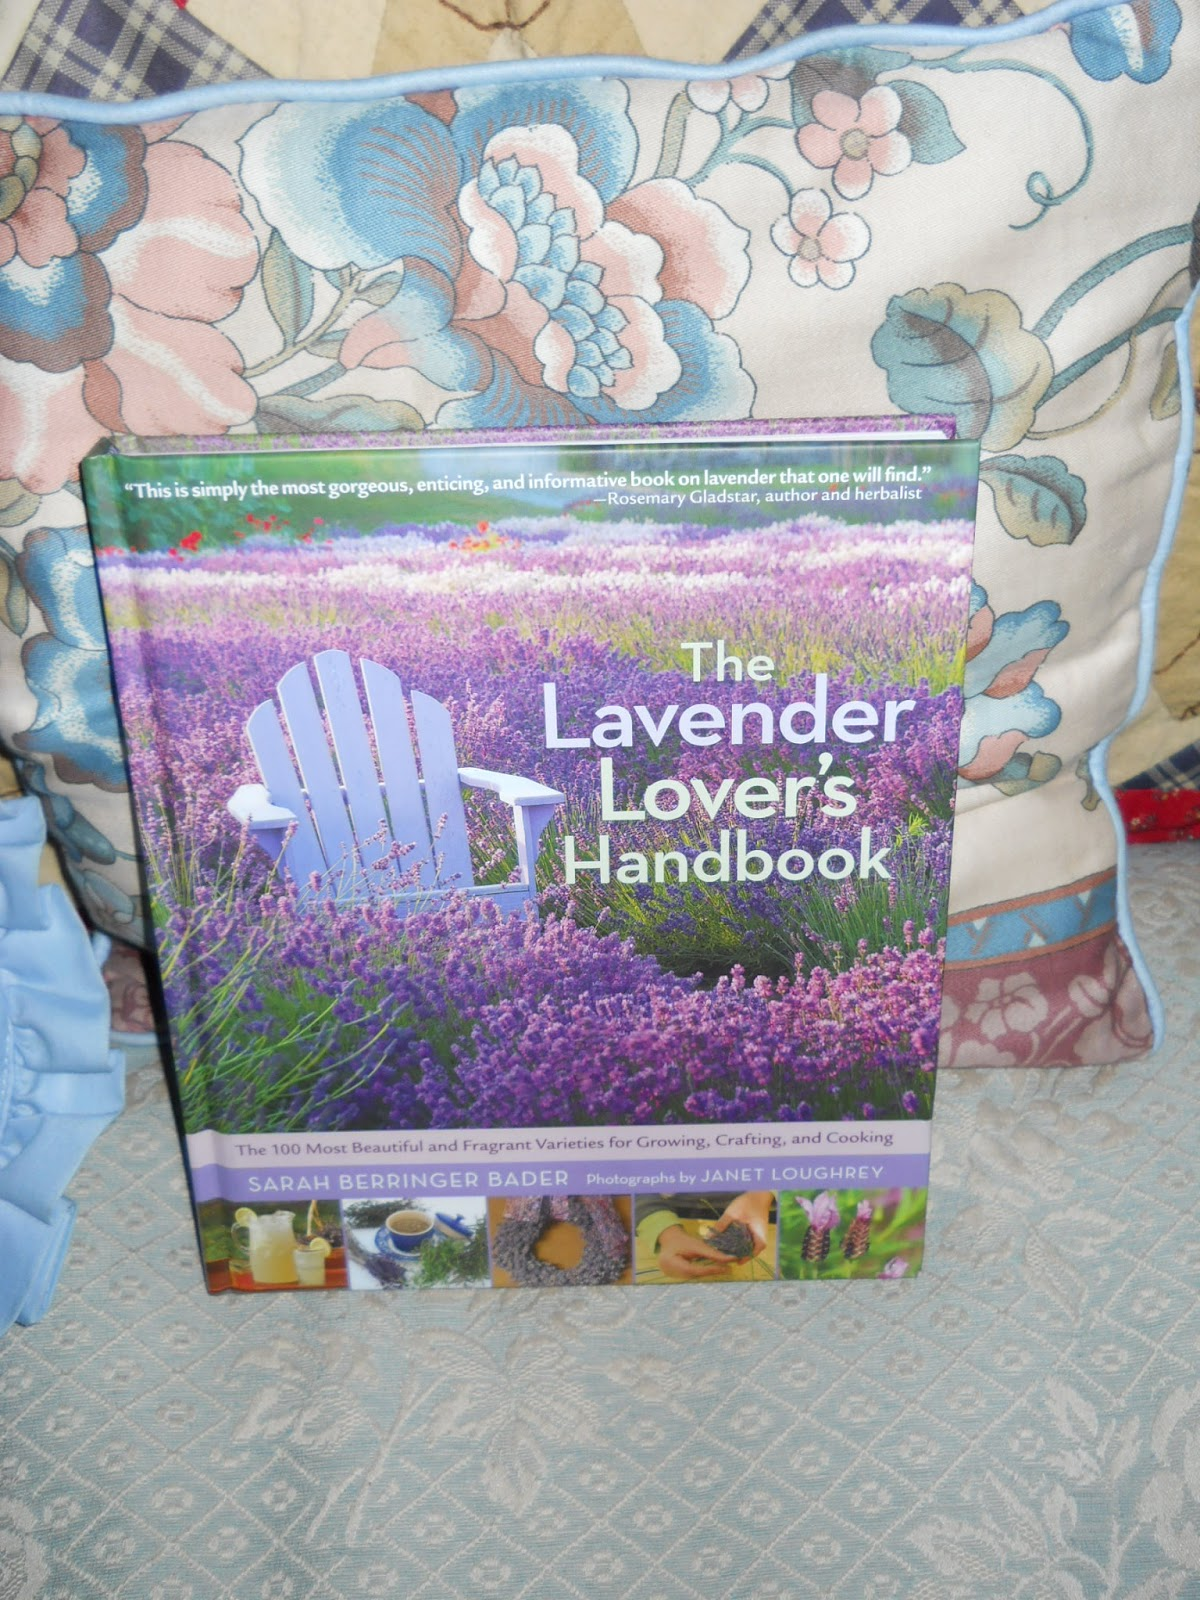 The 100 Most Beautiful and Fragrant Varieties for Growing The Lavender Lovers Handbook Crafting and Cooking